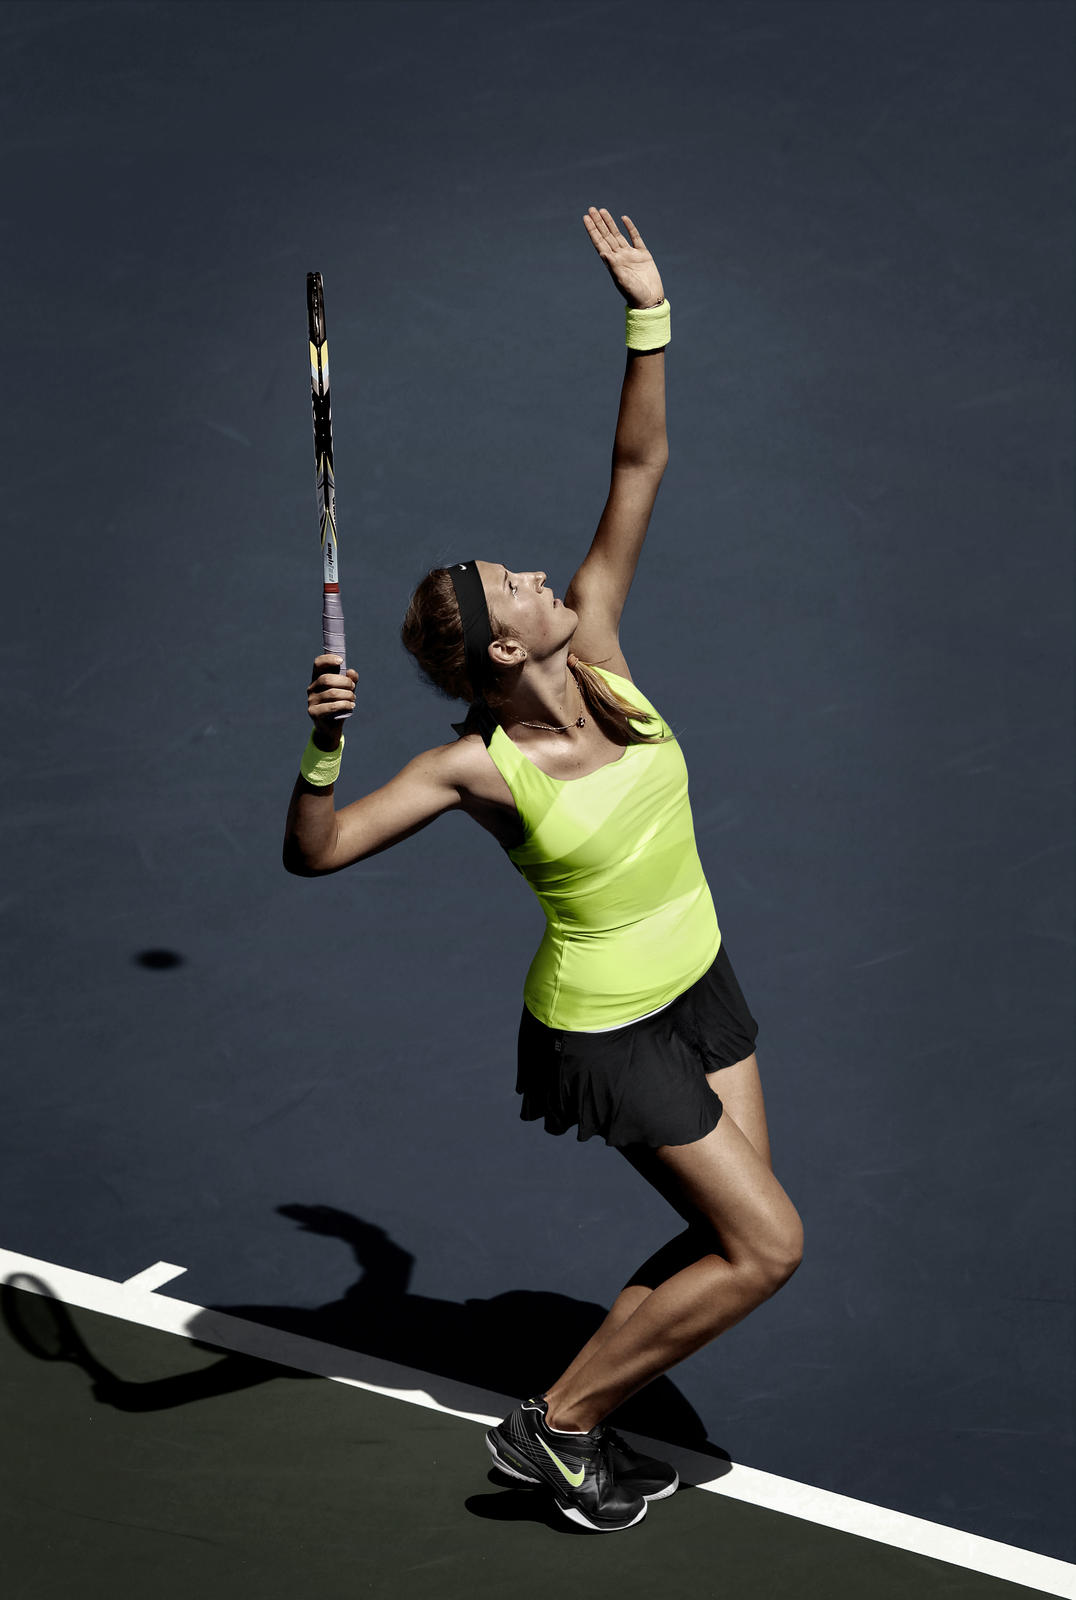 Nike Tennis presents new looks for New York - Nike News